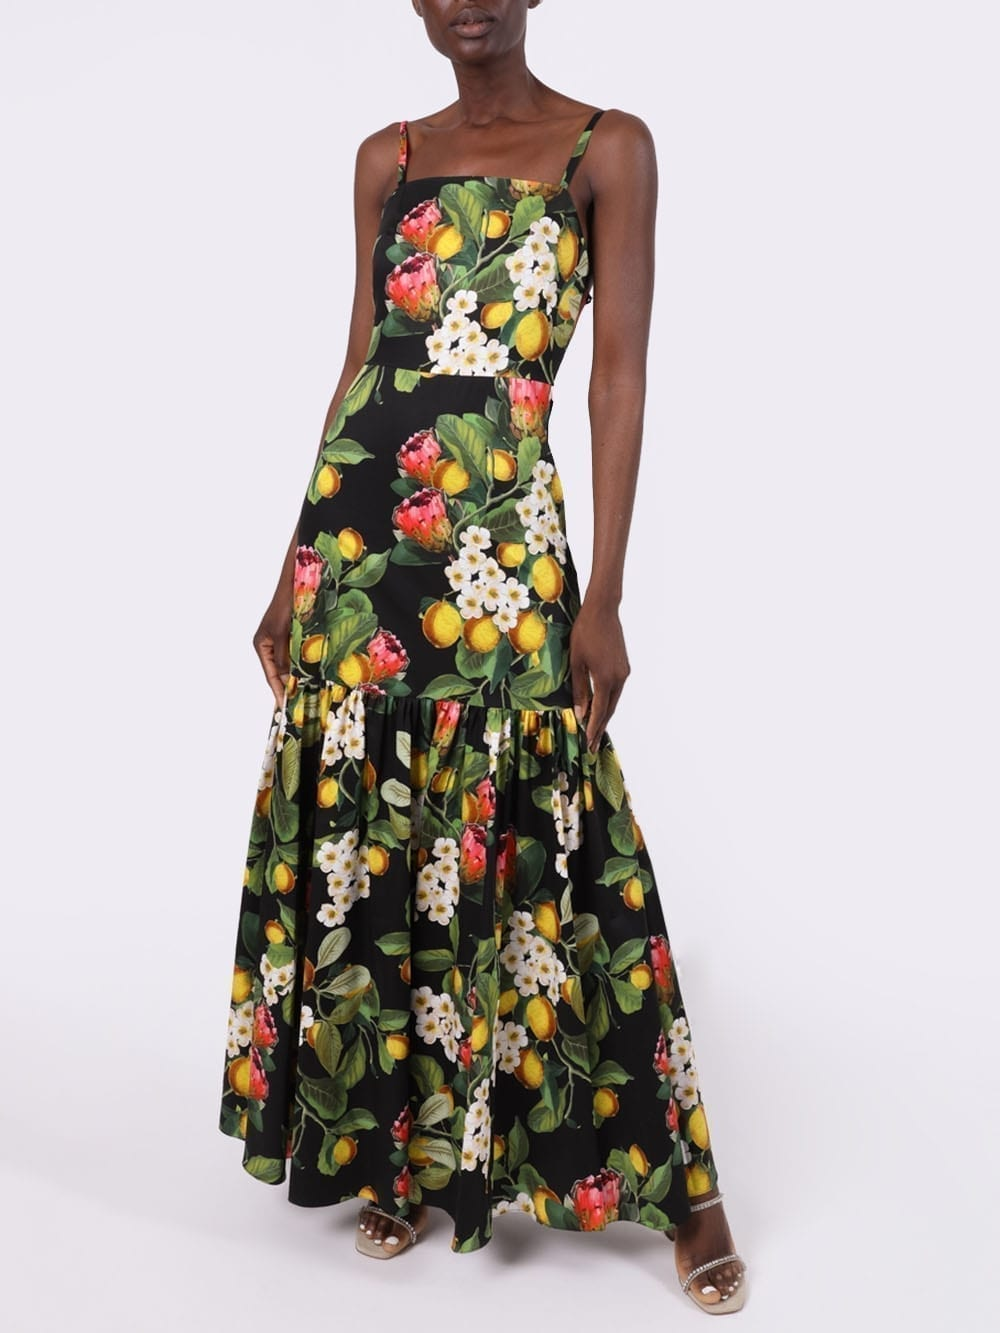 BORGO DE NOR Lemon Blossom Print Summer Dress